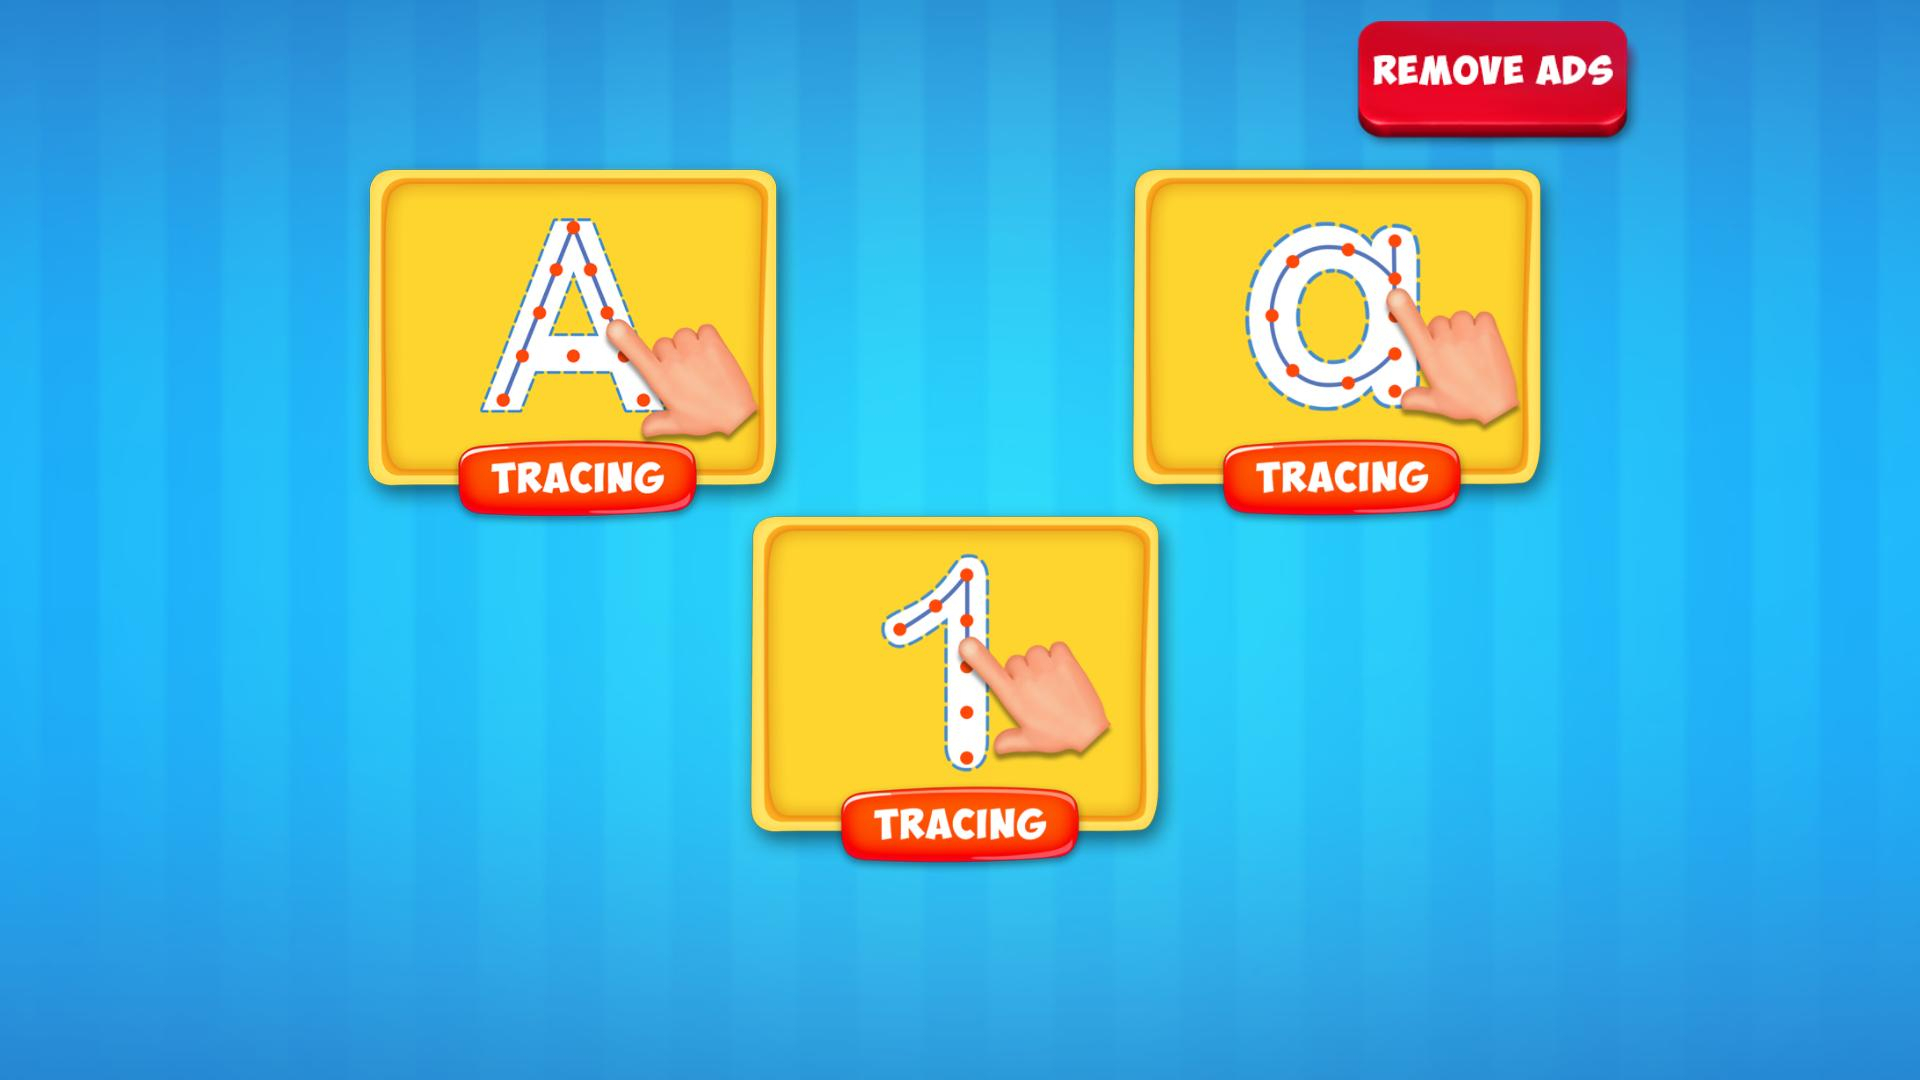 Abc Alphabet Tracing For Android - Apk Download pertaining to Alphabet Tracing App